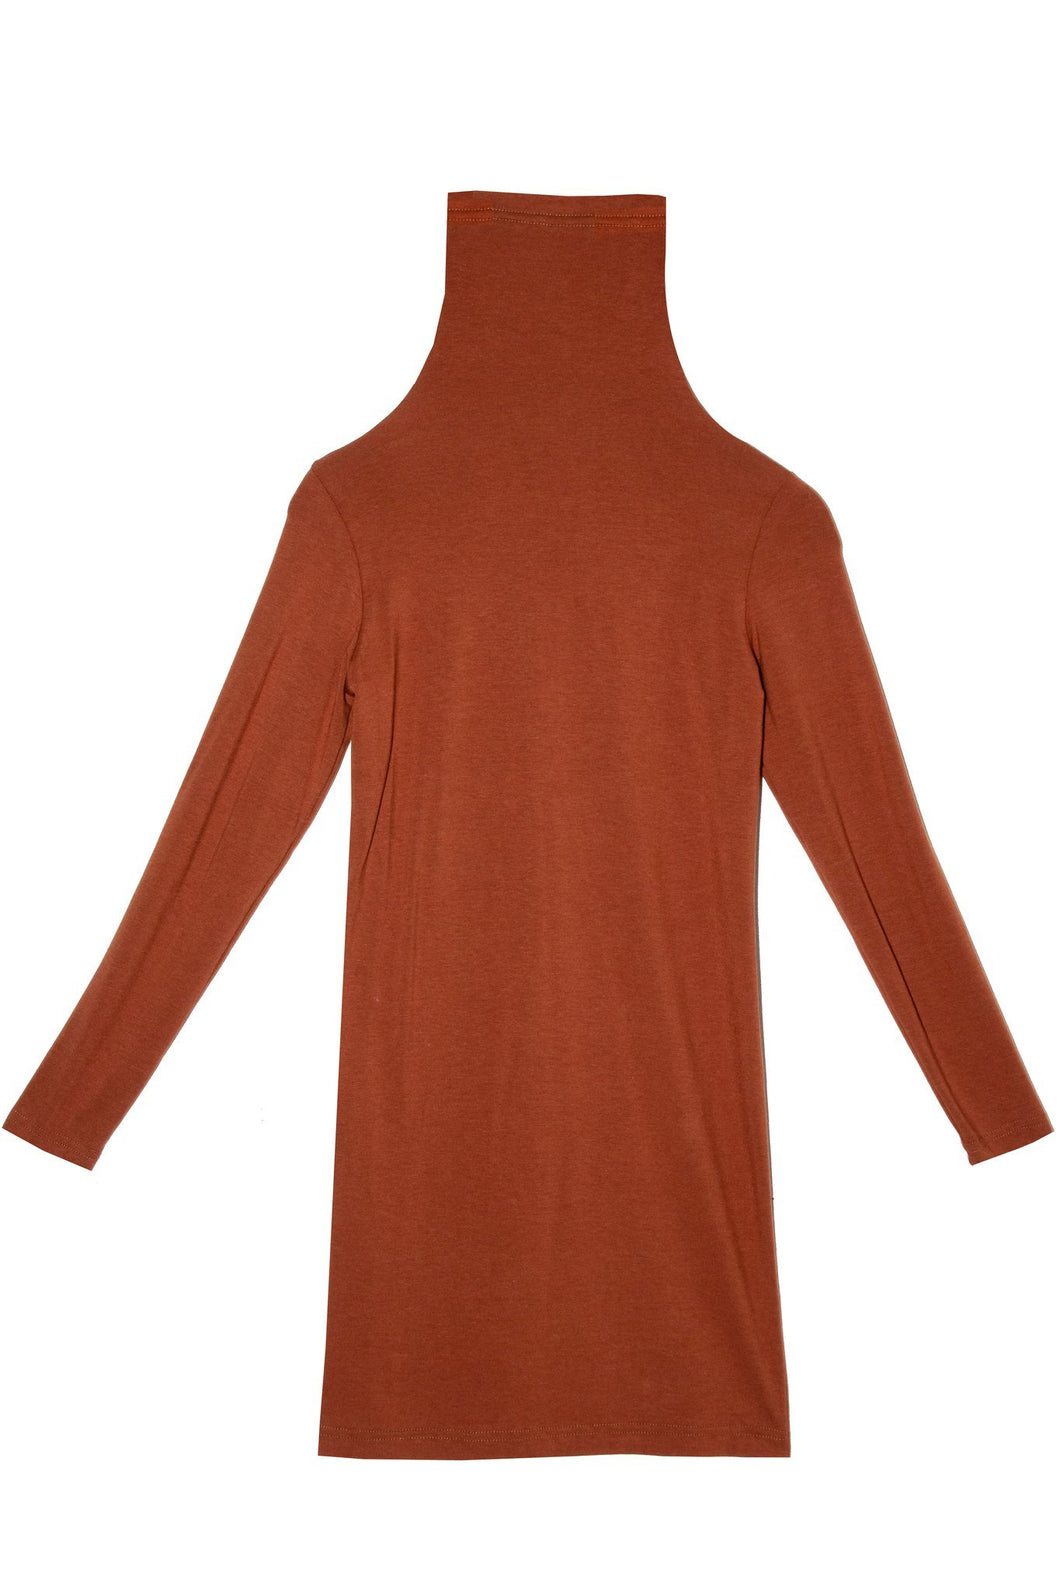 The Bandit Dress in Rust, S